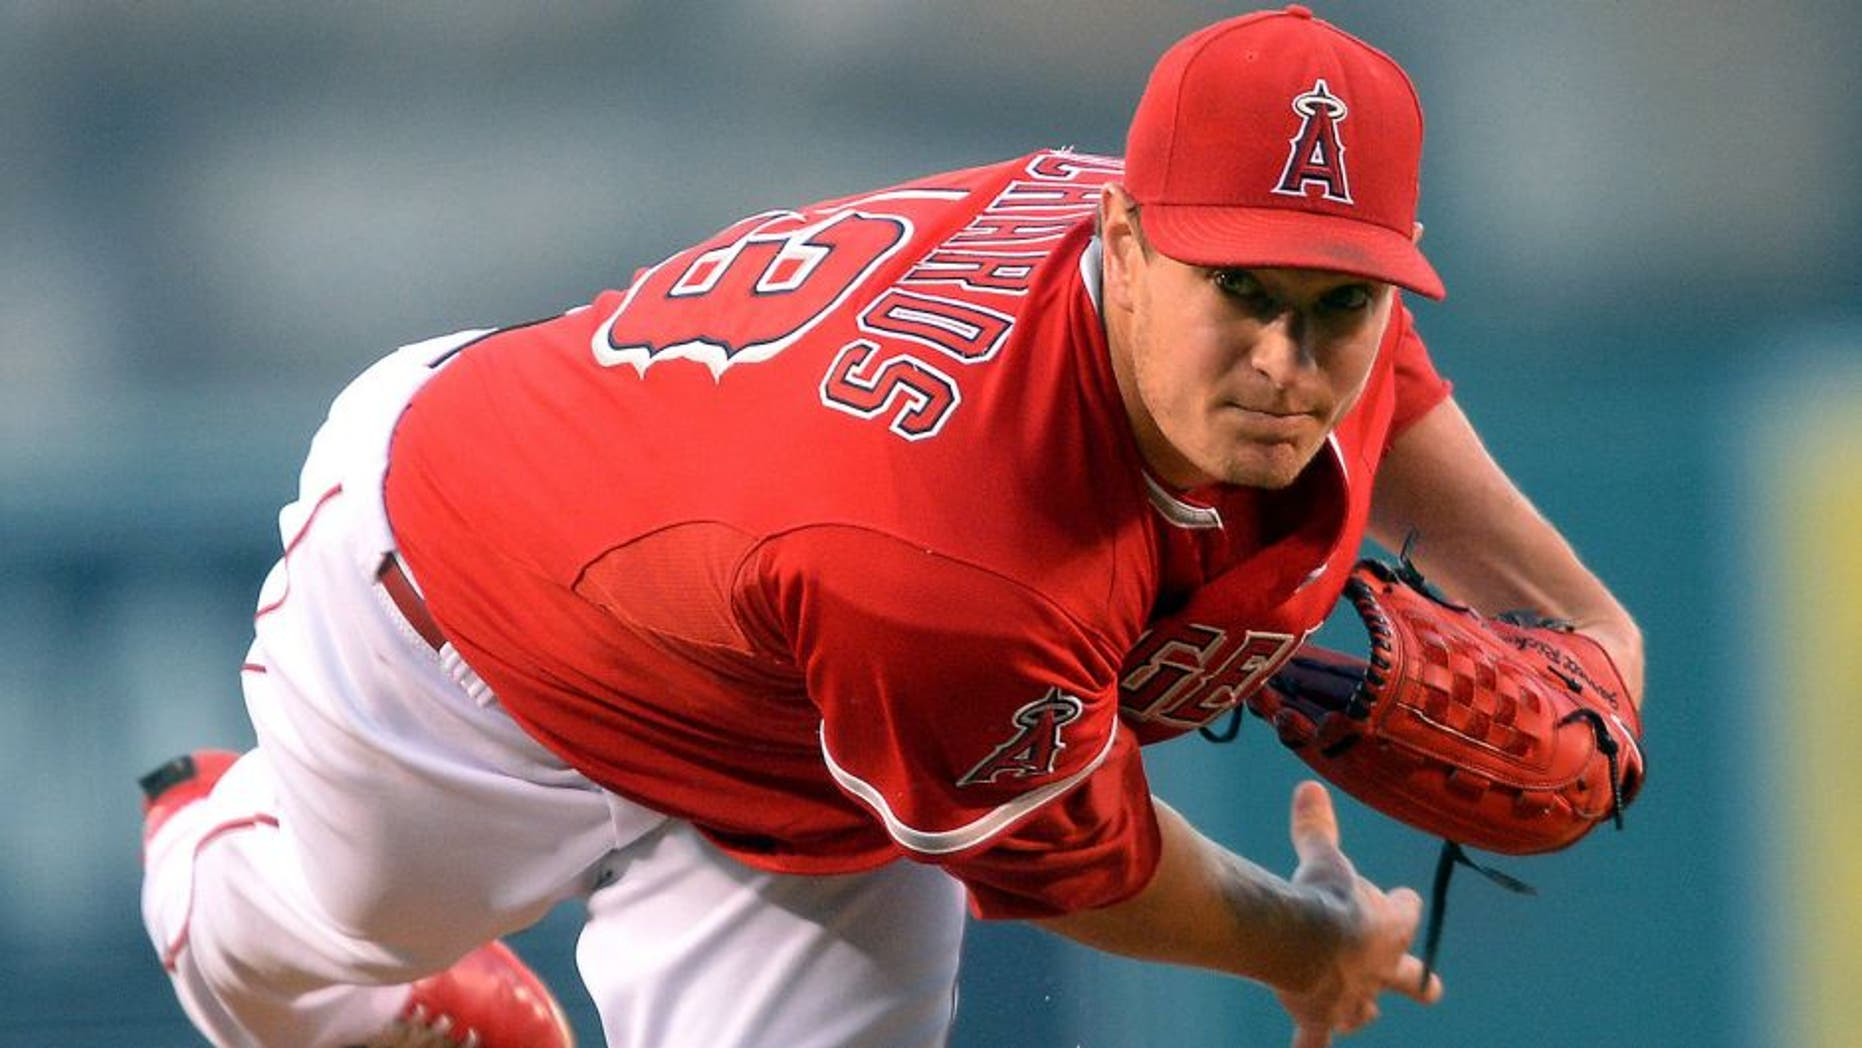 Aug 18, 2015; Anaheim, CA, USA; Los Angeles Angels starting pitcher Garrett Richards (43) in the first inning of the game against the Chicago White Sox at Angel Stadium of Anaheim. Mandatory Credit: Jayne Kamin-Oncea-USA TODAY Sports